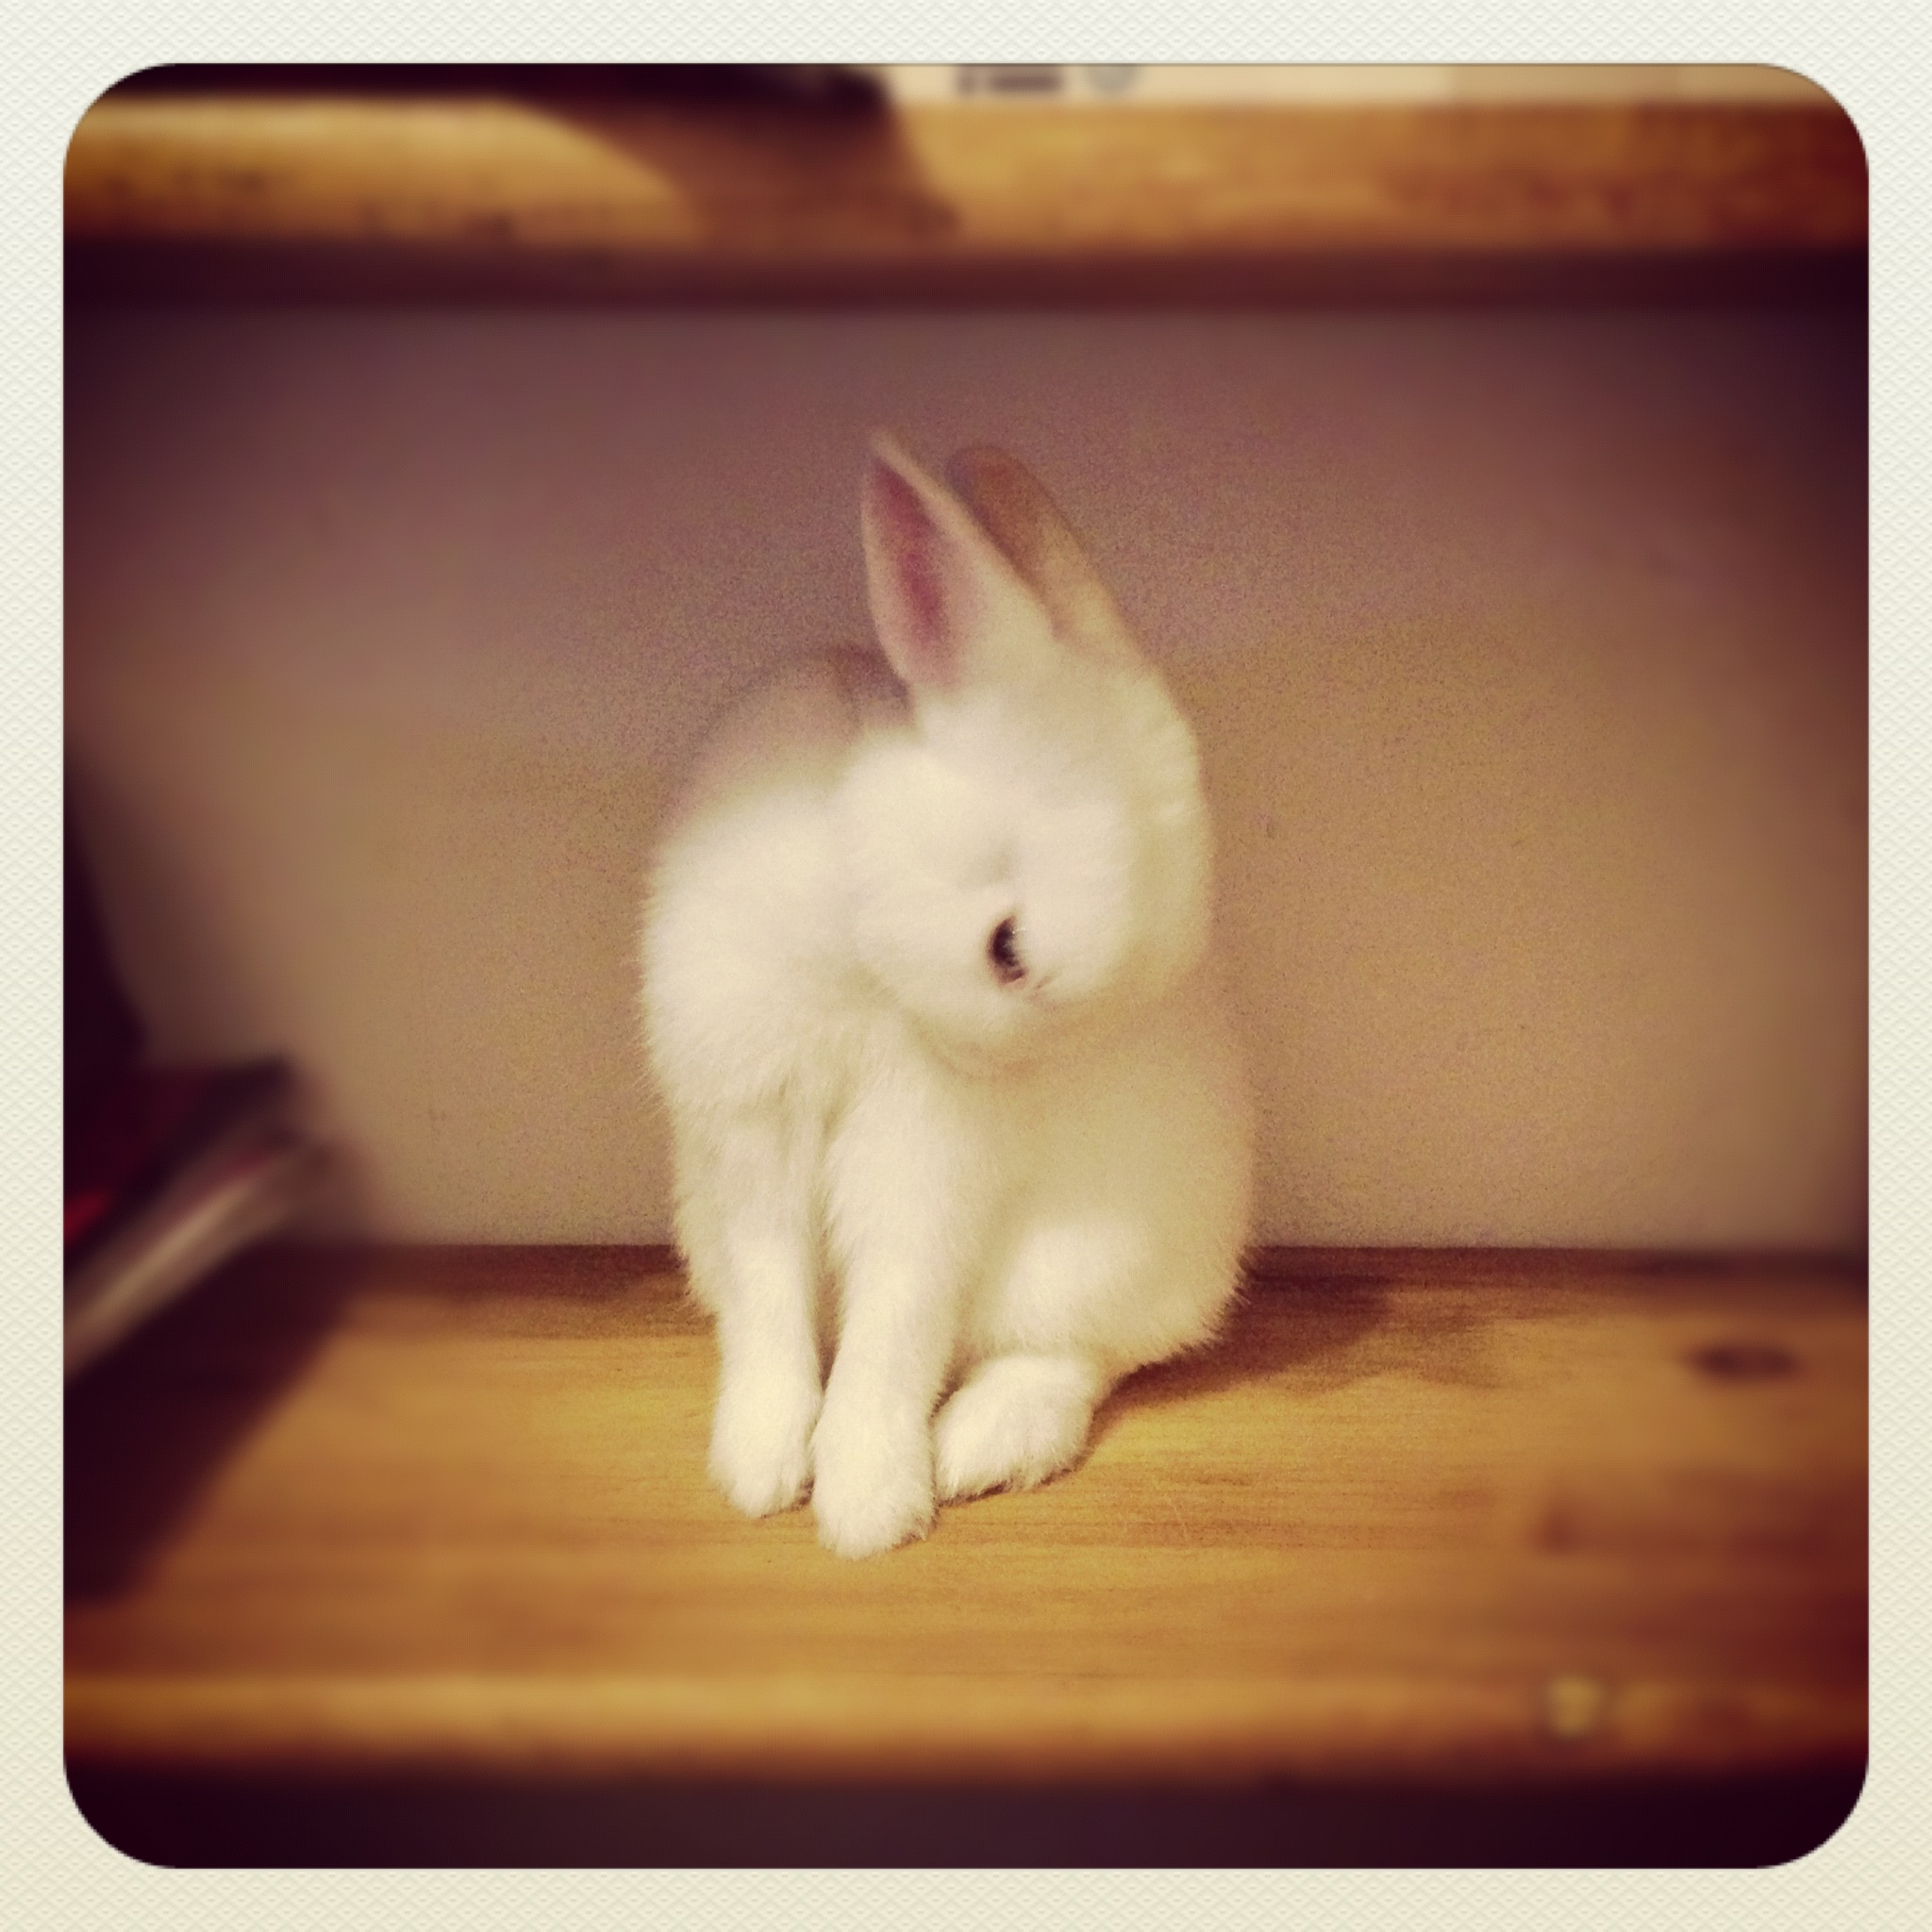 Bunny Finds a Place on the Shelf for a Grooming Session